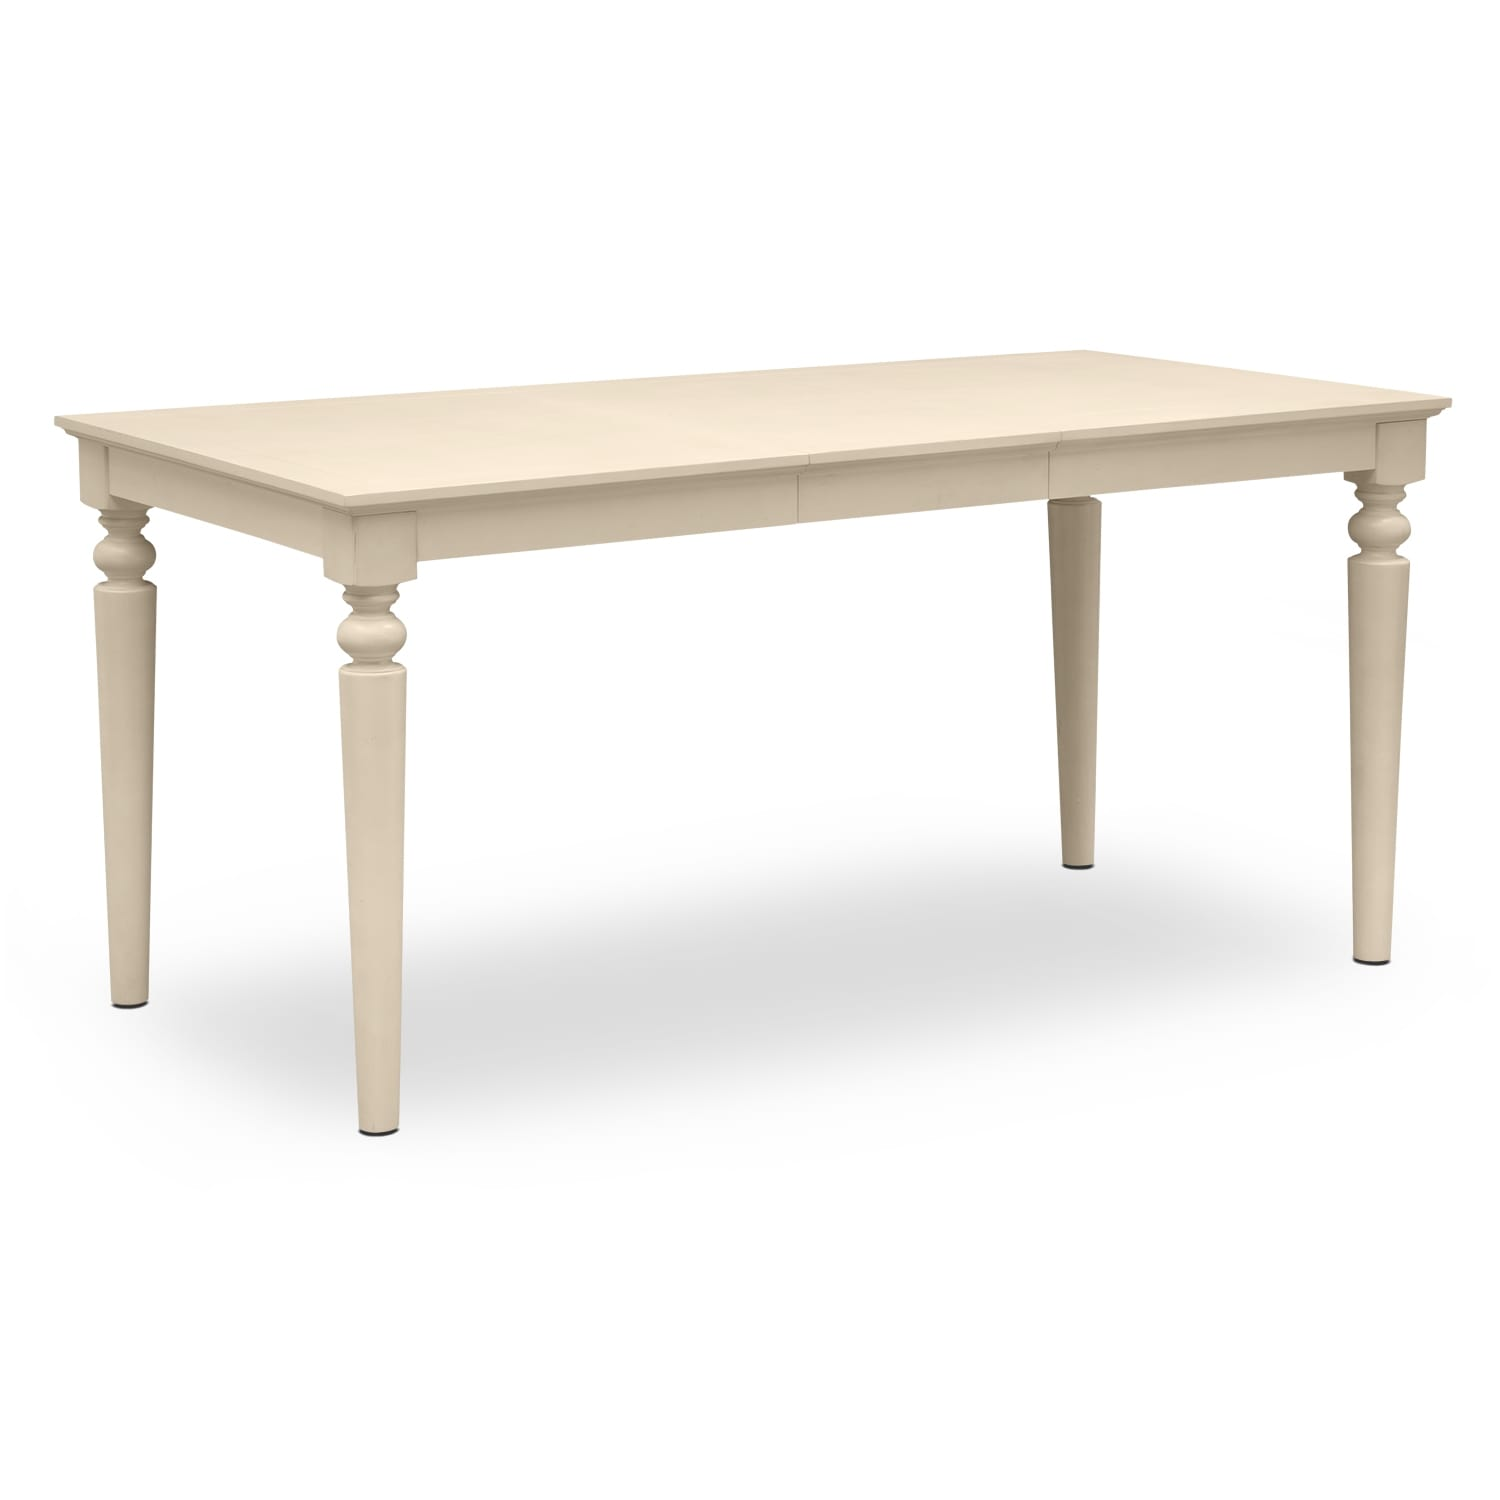 Carnival white ii dining room counter height table value for Counter height dining table